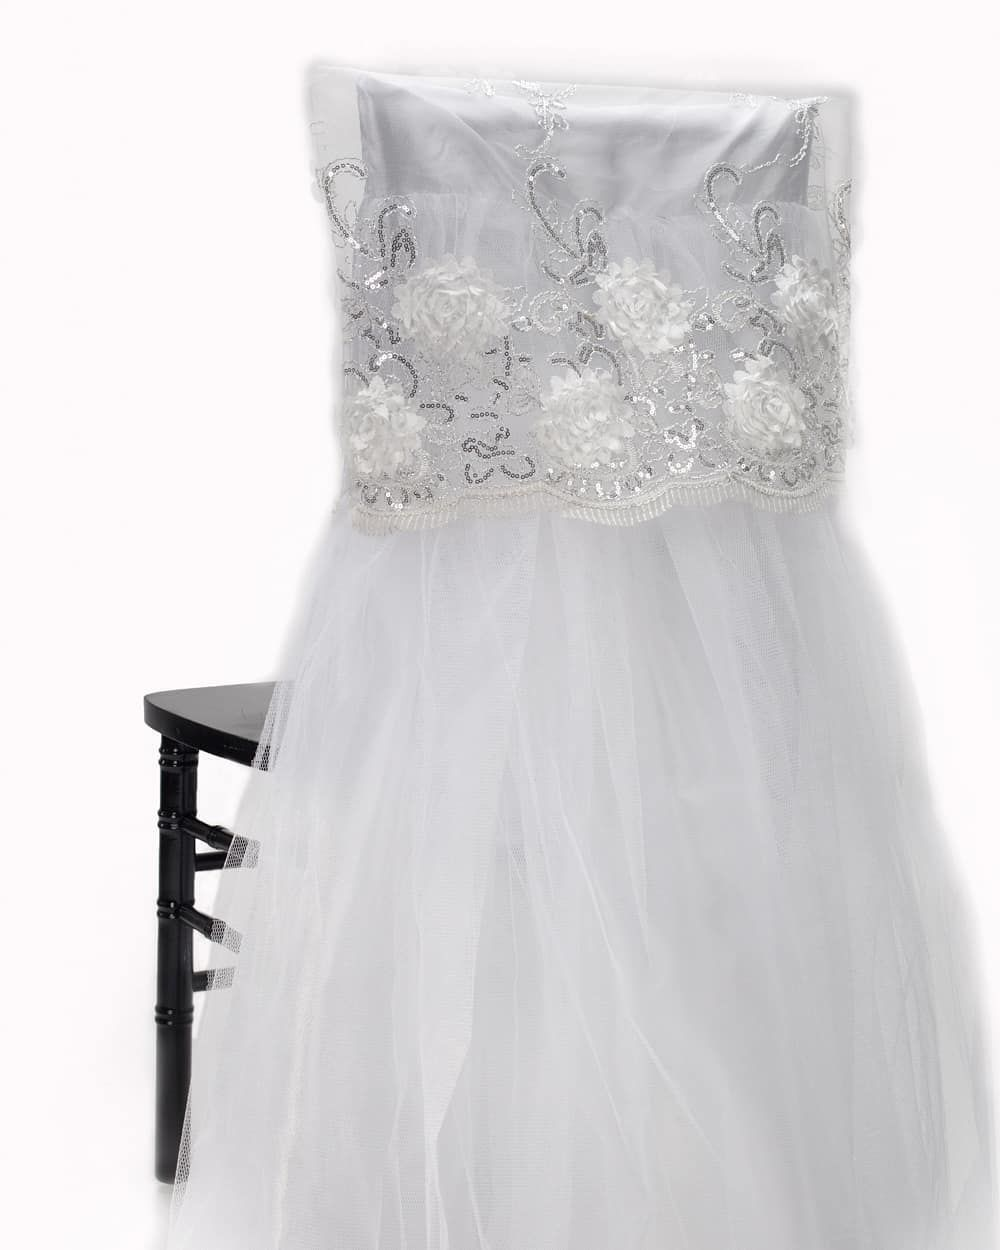 Enjoyable Pin On Chair Covers For Weddings Receptions And Events Beatyapartments Chair Design Images Beatyapartmentscom